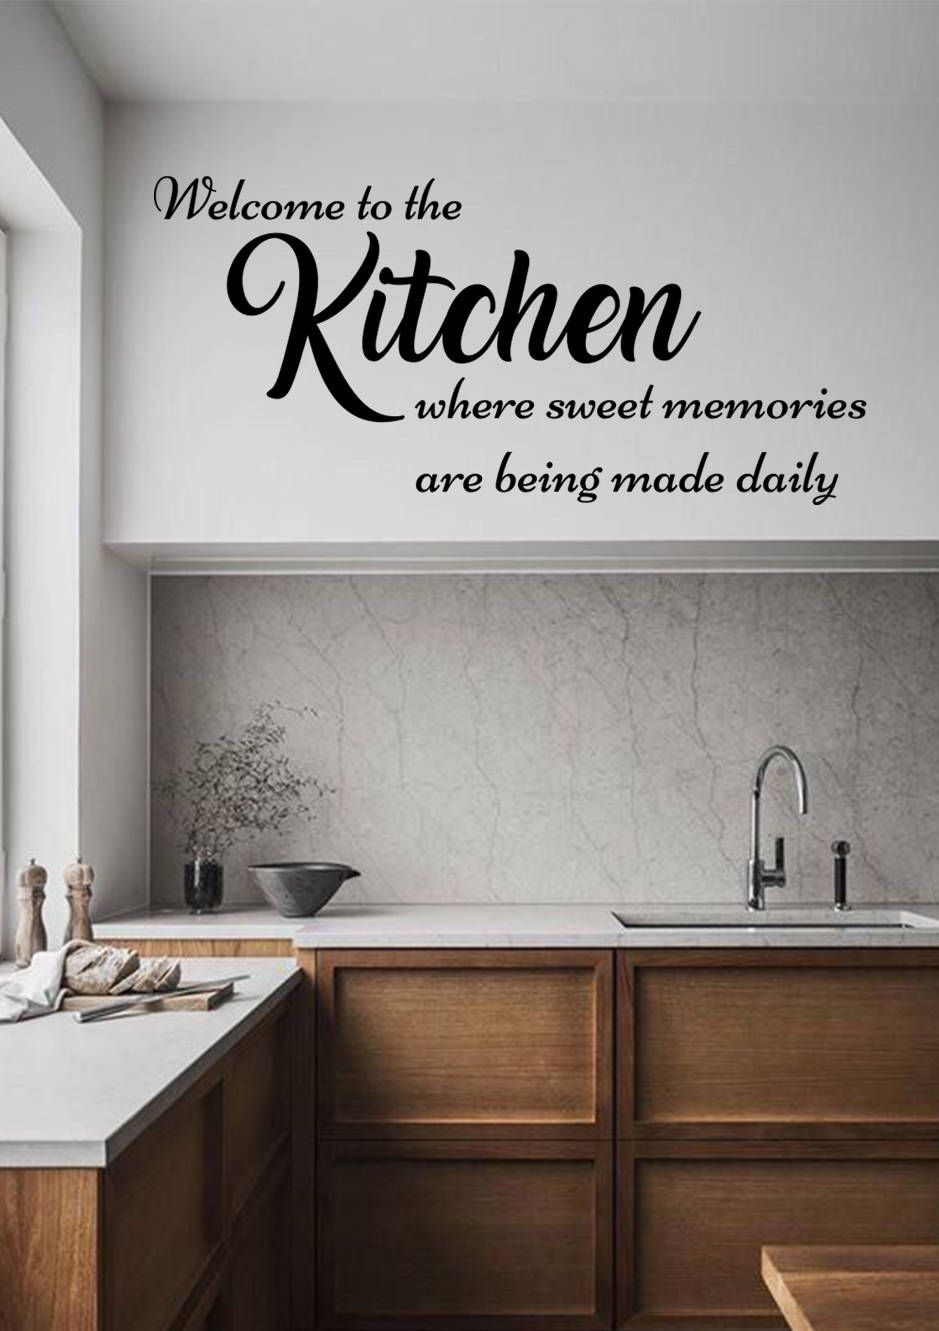 Family Wall Decals Kitchen Quote Vinyl Decals Family Stickers Kitchen Decor Quote Wall Decal Kitchen Quotes Decor Kitchen Wall Decals Vinyl Wall Decals Kitchen